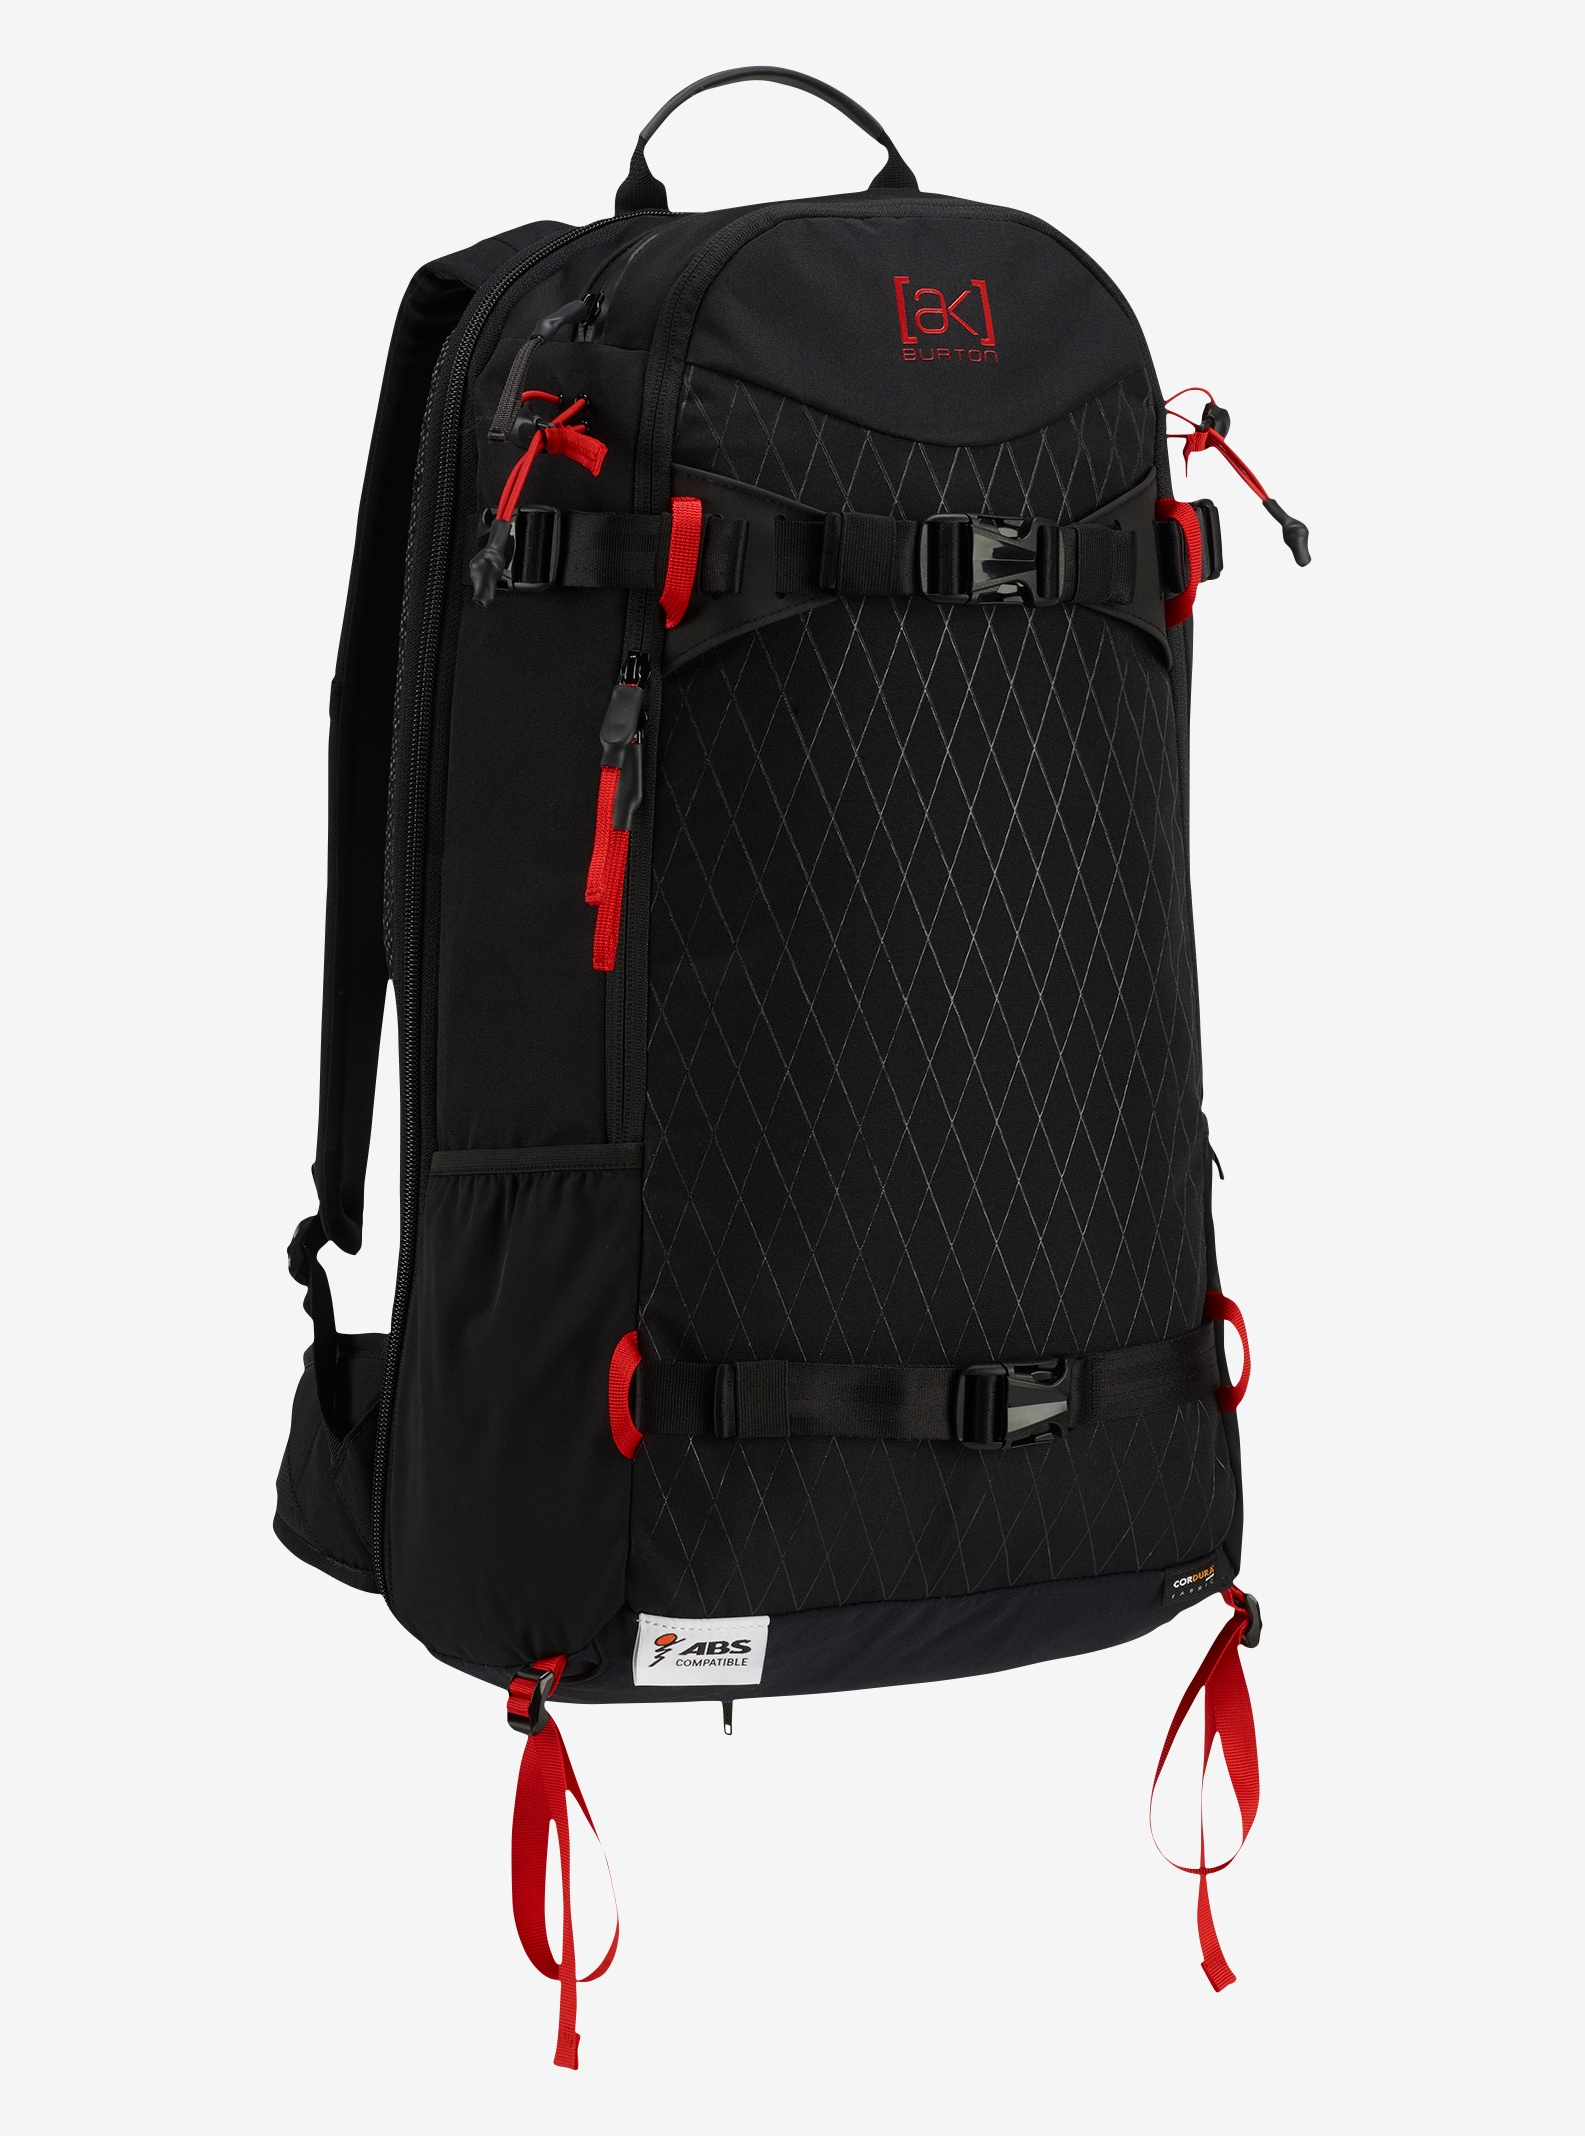 Burton ABS Vario Compatible 24L Backpack shown in Black Cordura®